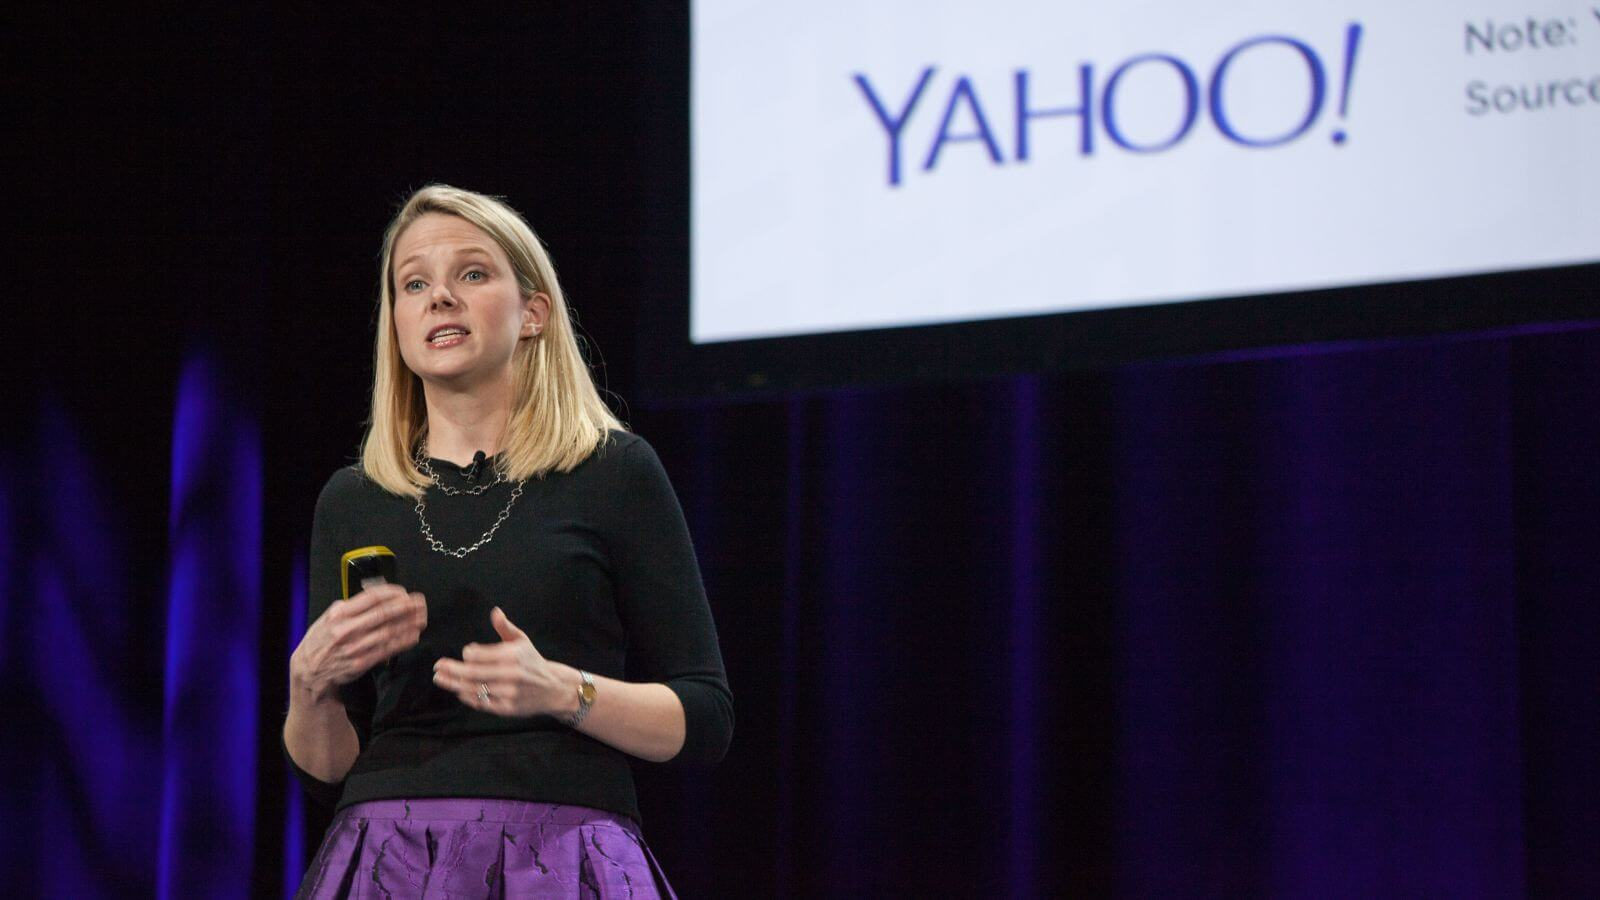 Verizon will get a $350 million discount for Yahoo in light of breach disclosures